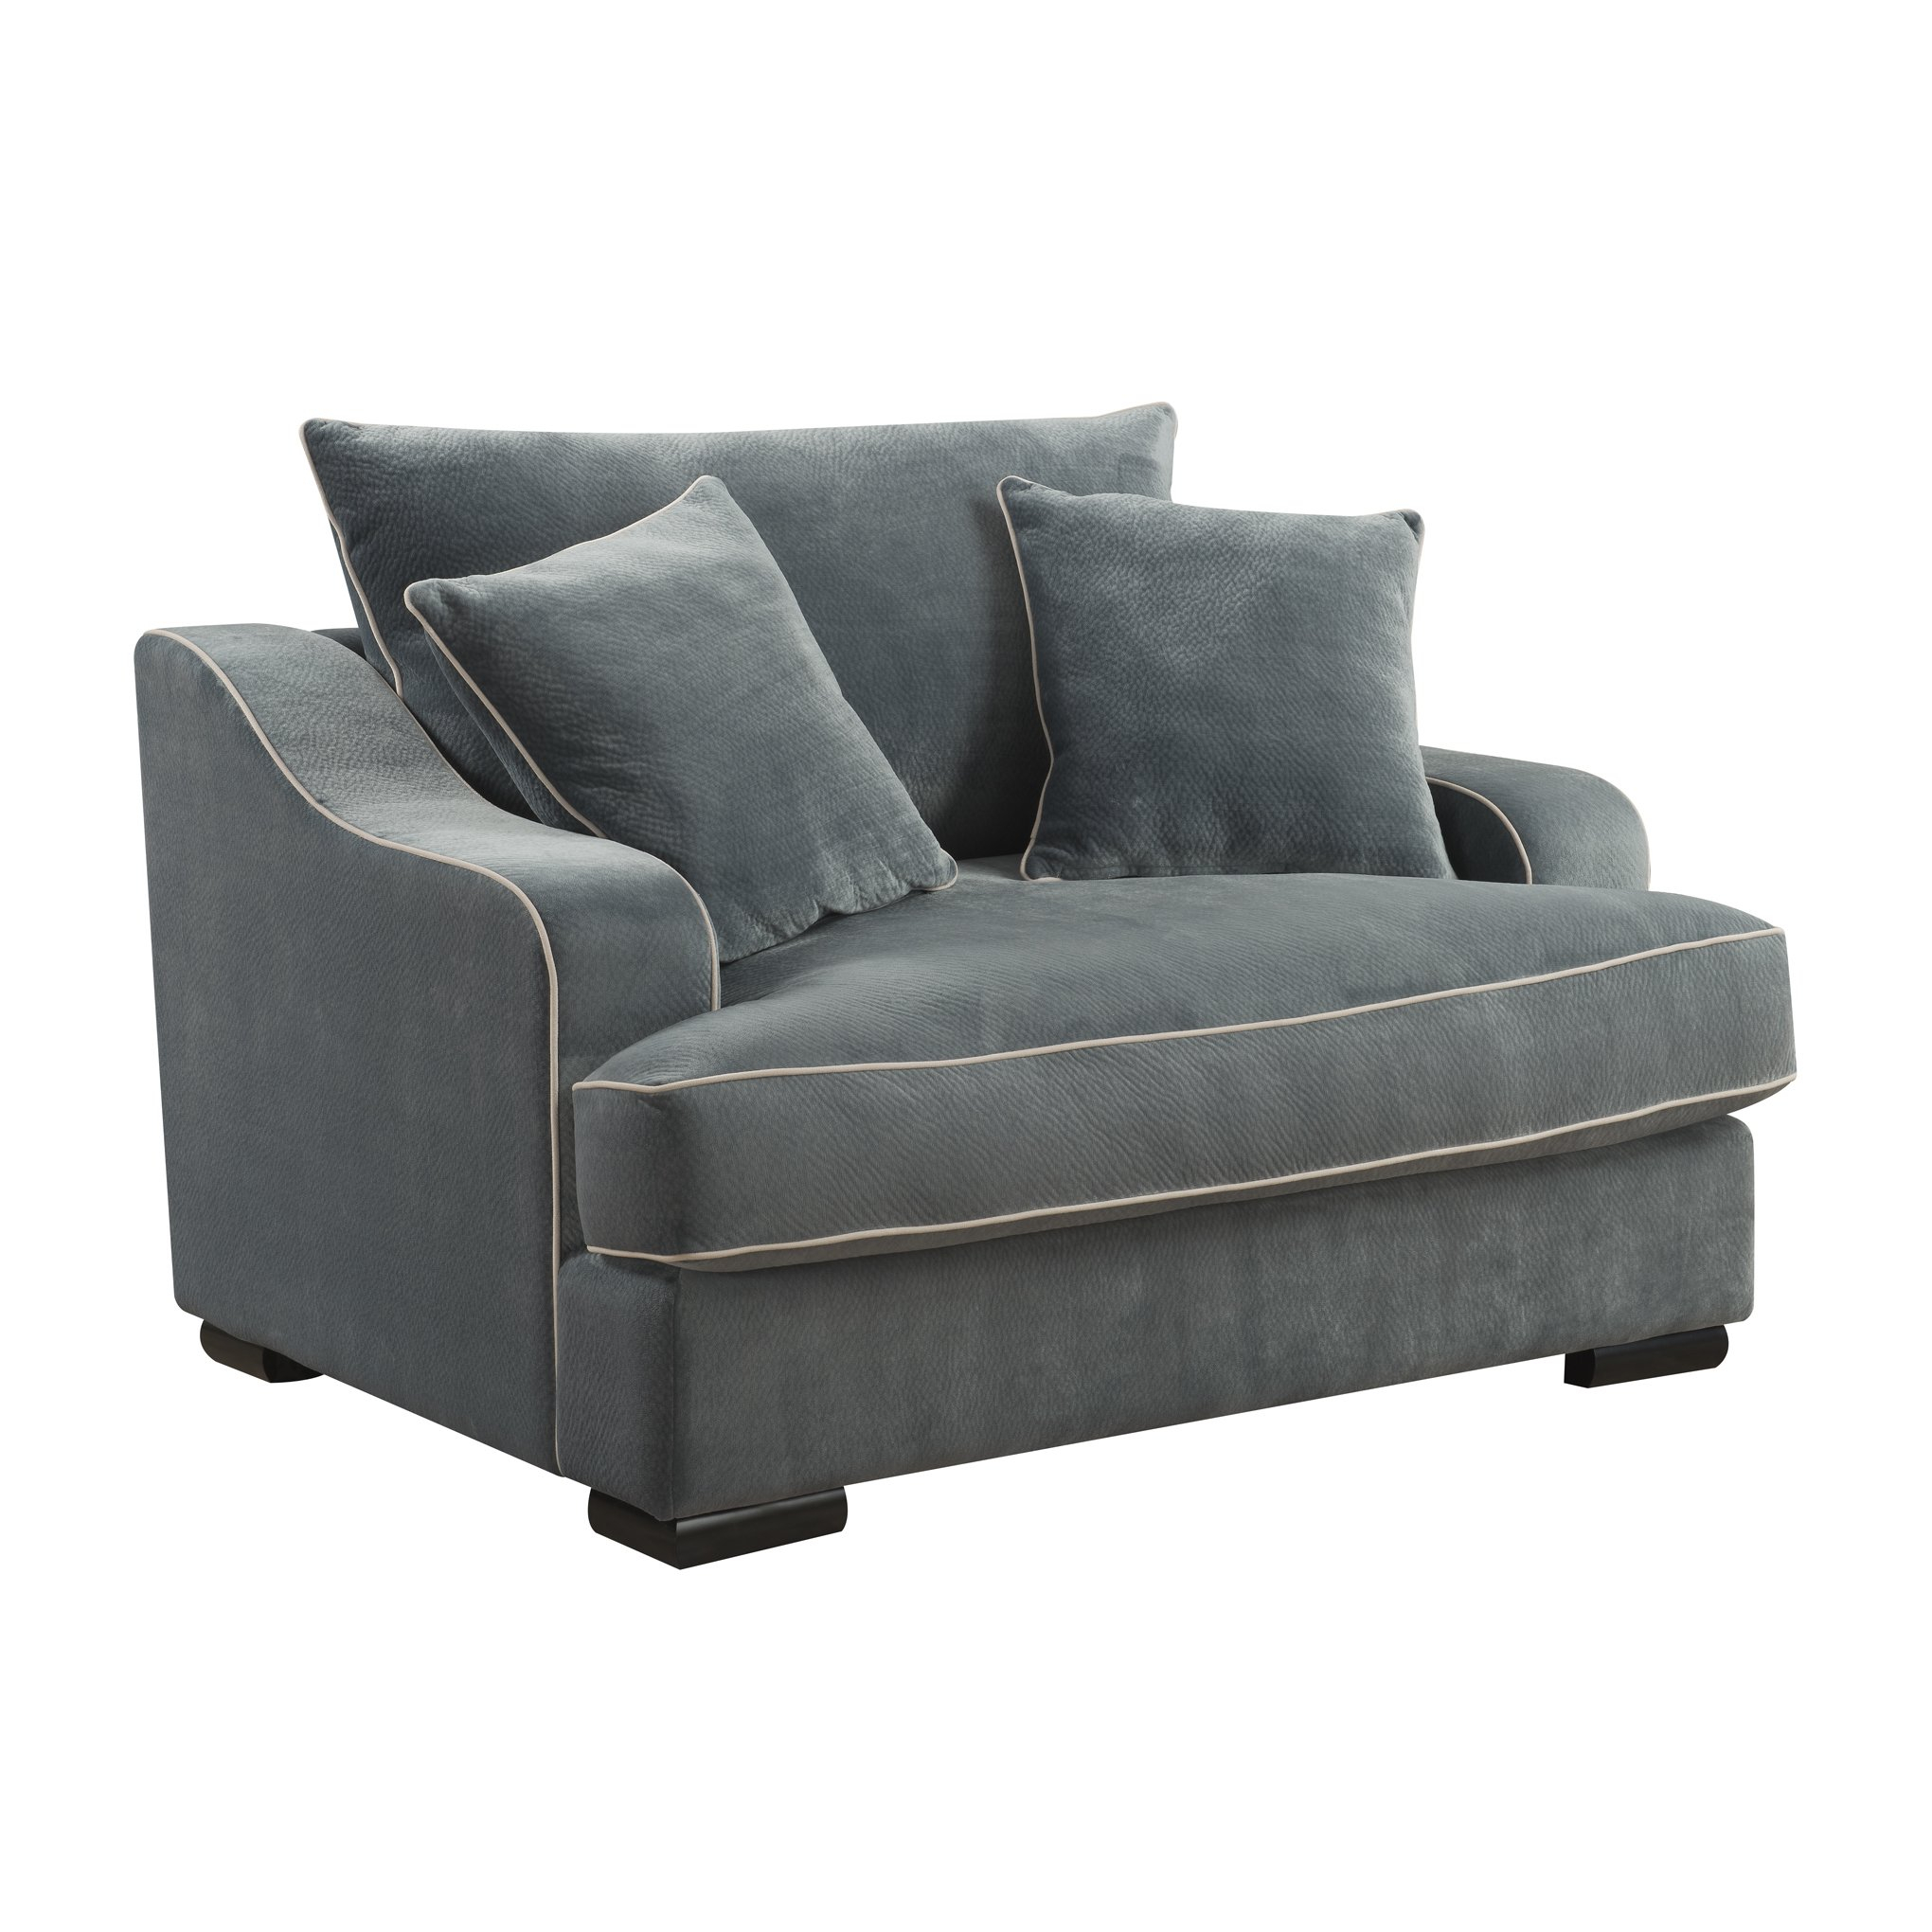 Shop Emerald Home Caresse Marine Blue Plush Oversized Chair – Free With Regard To Caressa Leather Dove Grey Sofa Chairs (Image 22 of 25)